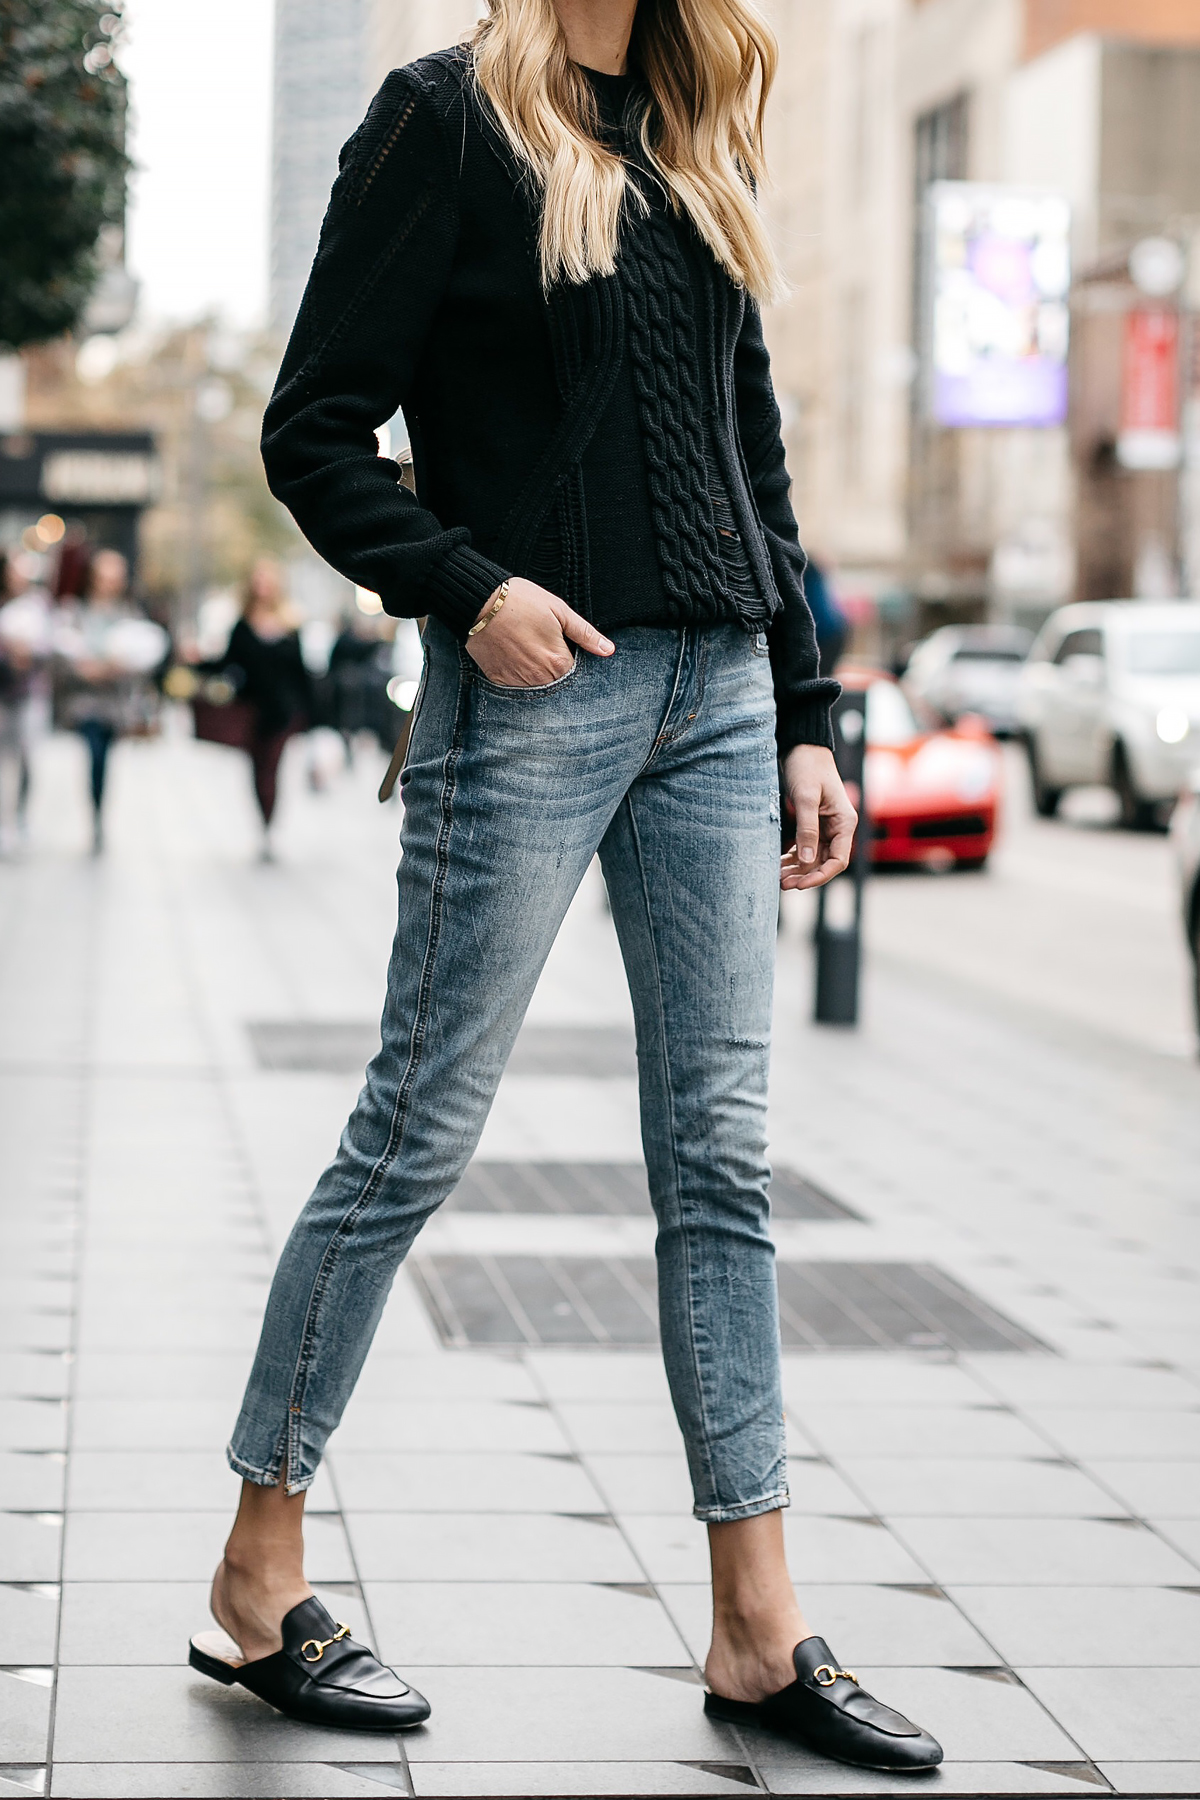 Woman Wearing Black Sweater Denim Jeans Outfit Frame Black Cable Knit Sweater Denim Split Hem Skinny Jeans Gucci Loafer Mules Fashion Jackson Dallas Blogger Fashion Blogger Street Style